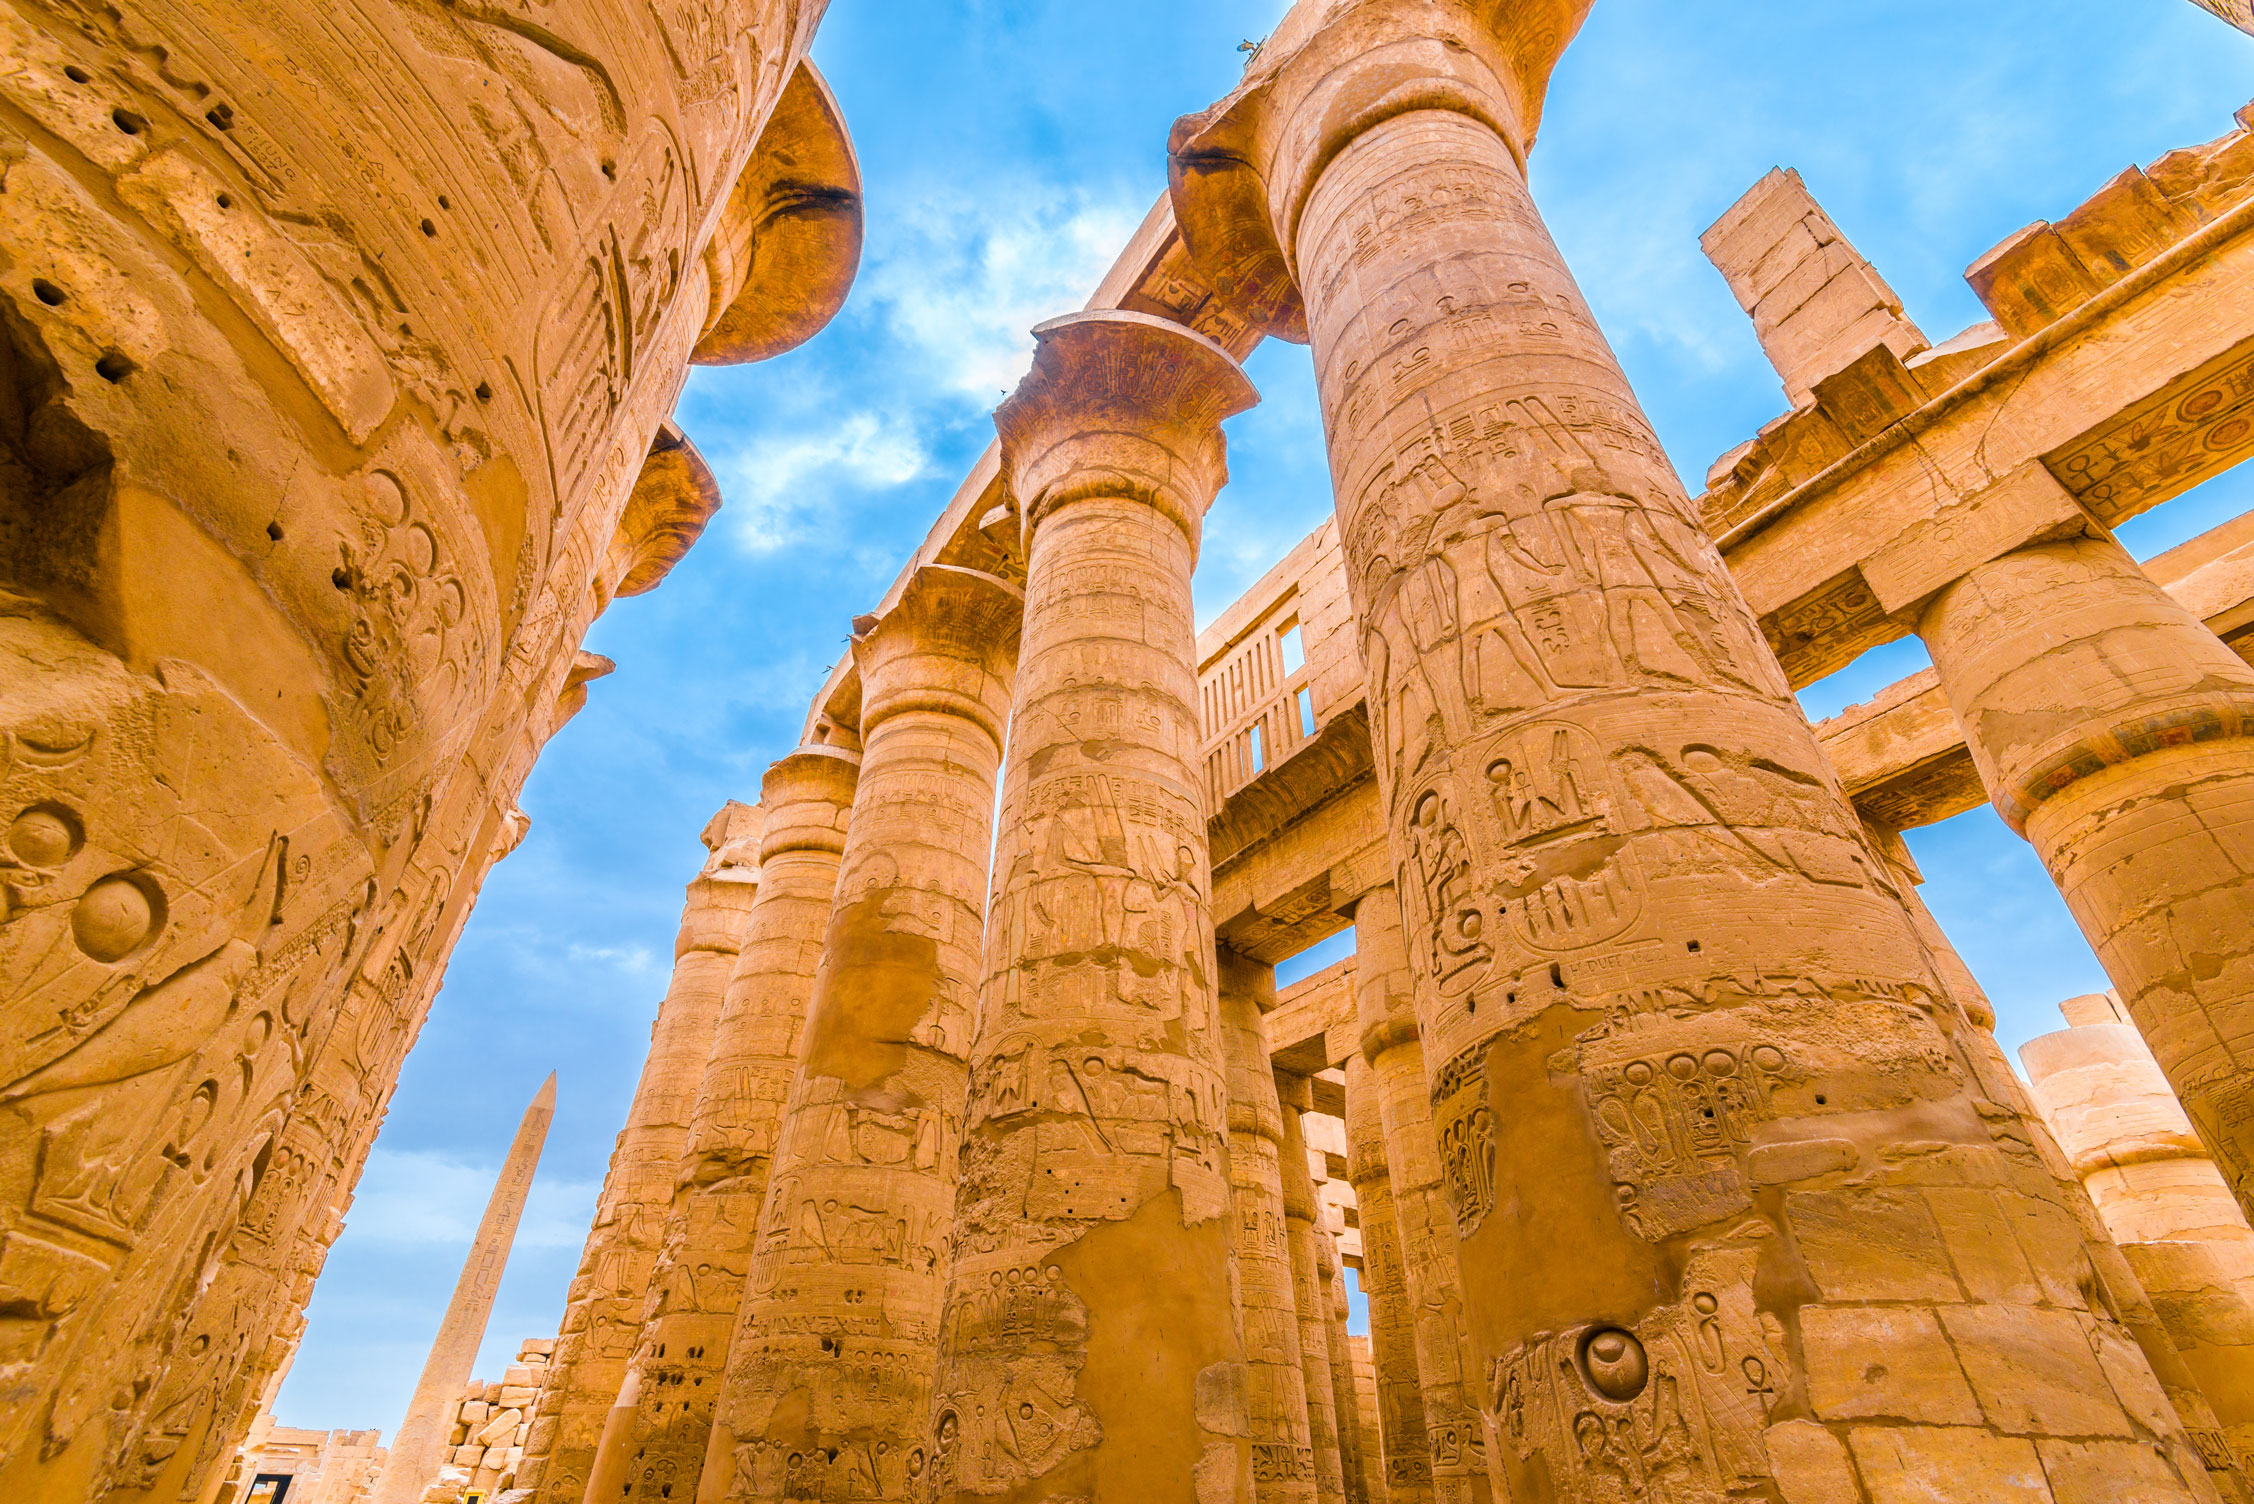 EGY_Luxor-Temple-of-Karnak-©-Adobe-Stock_115968547.jpg